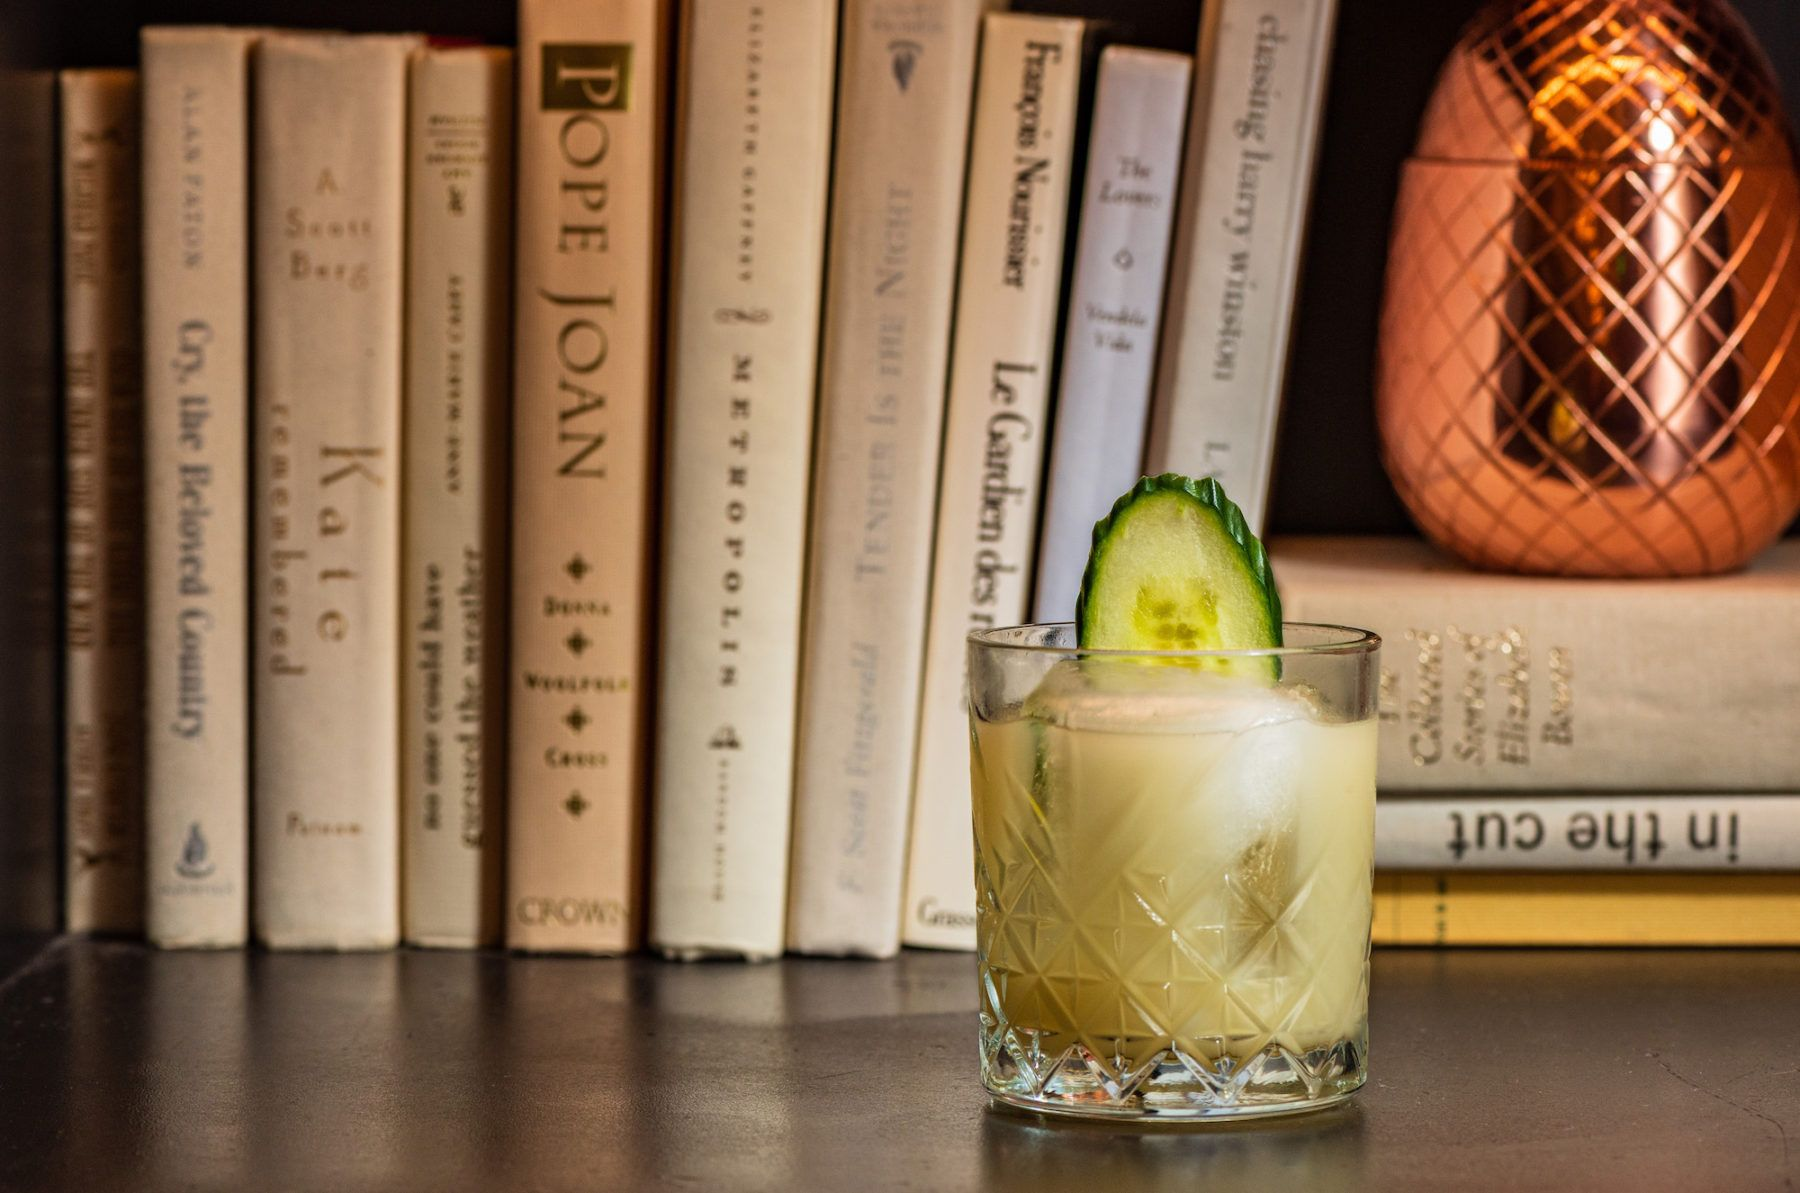 Cocktail in crystal glass on book shelf